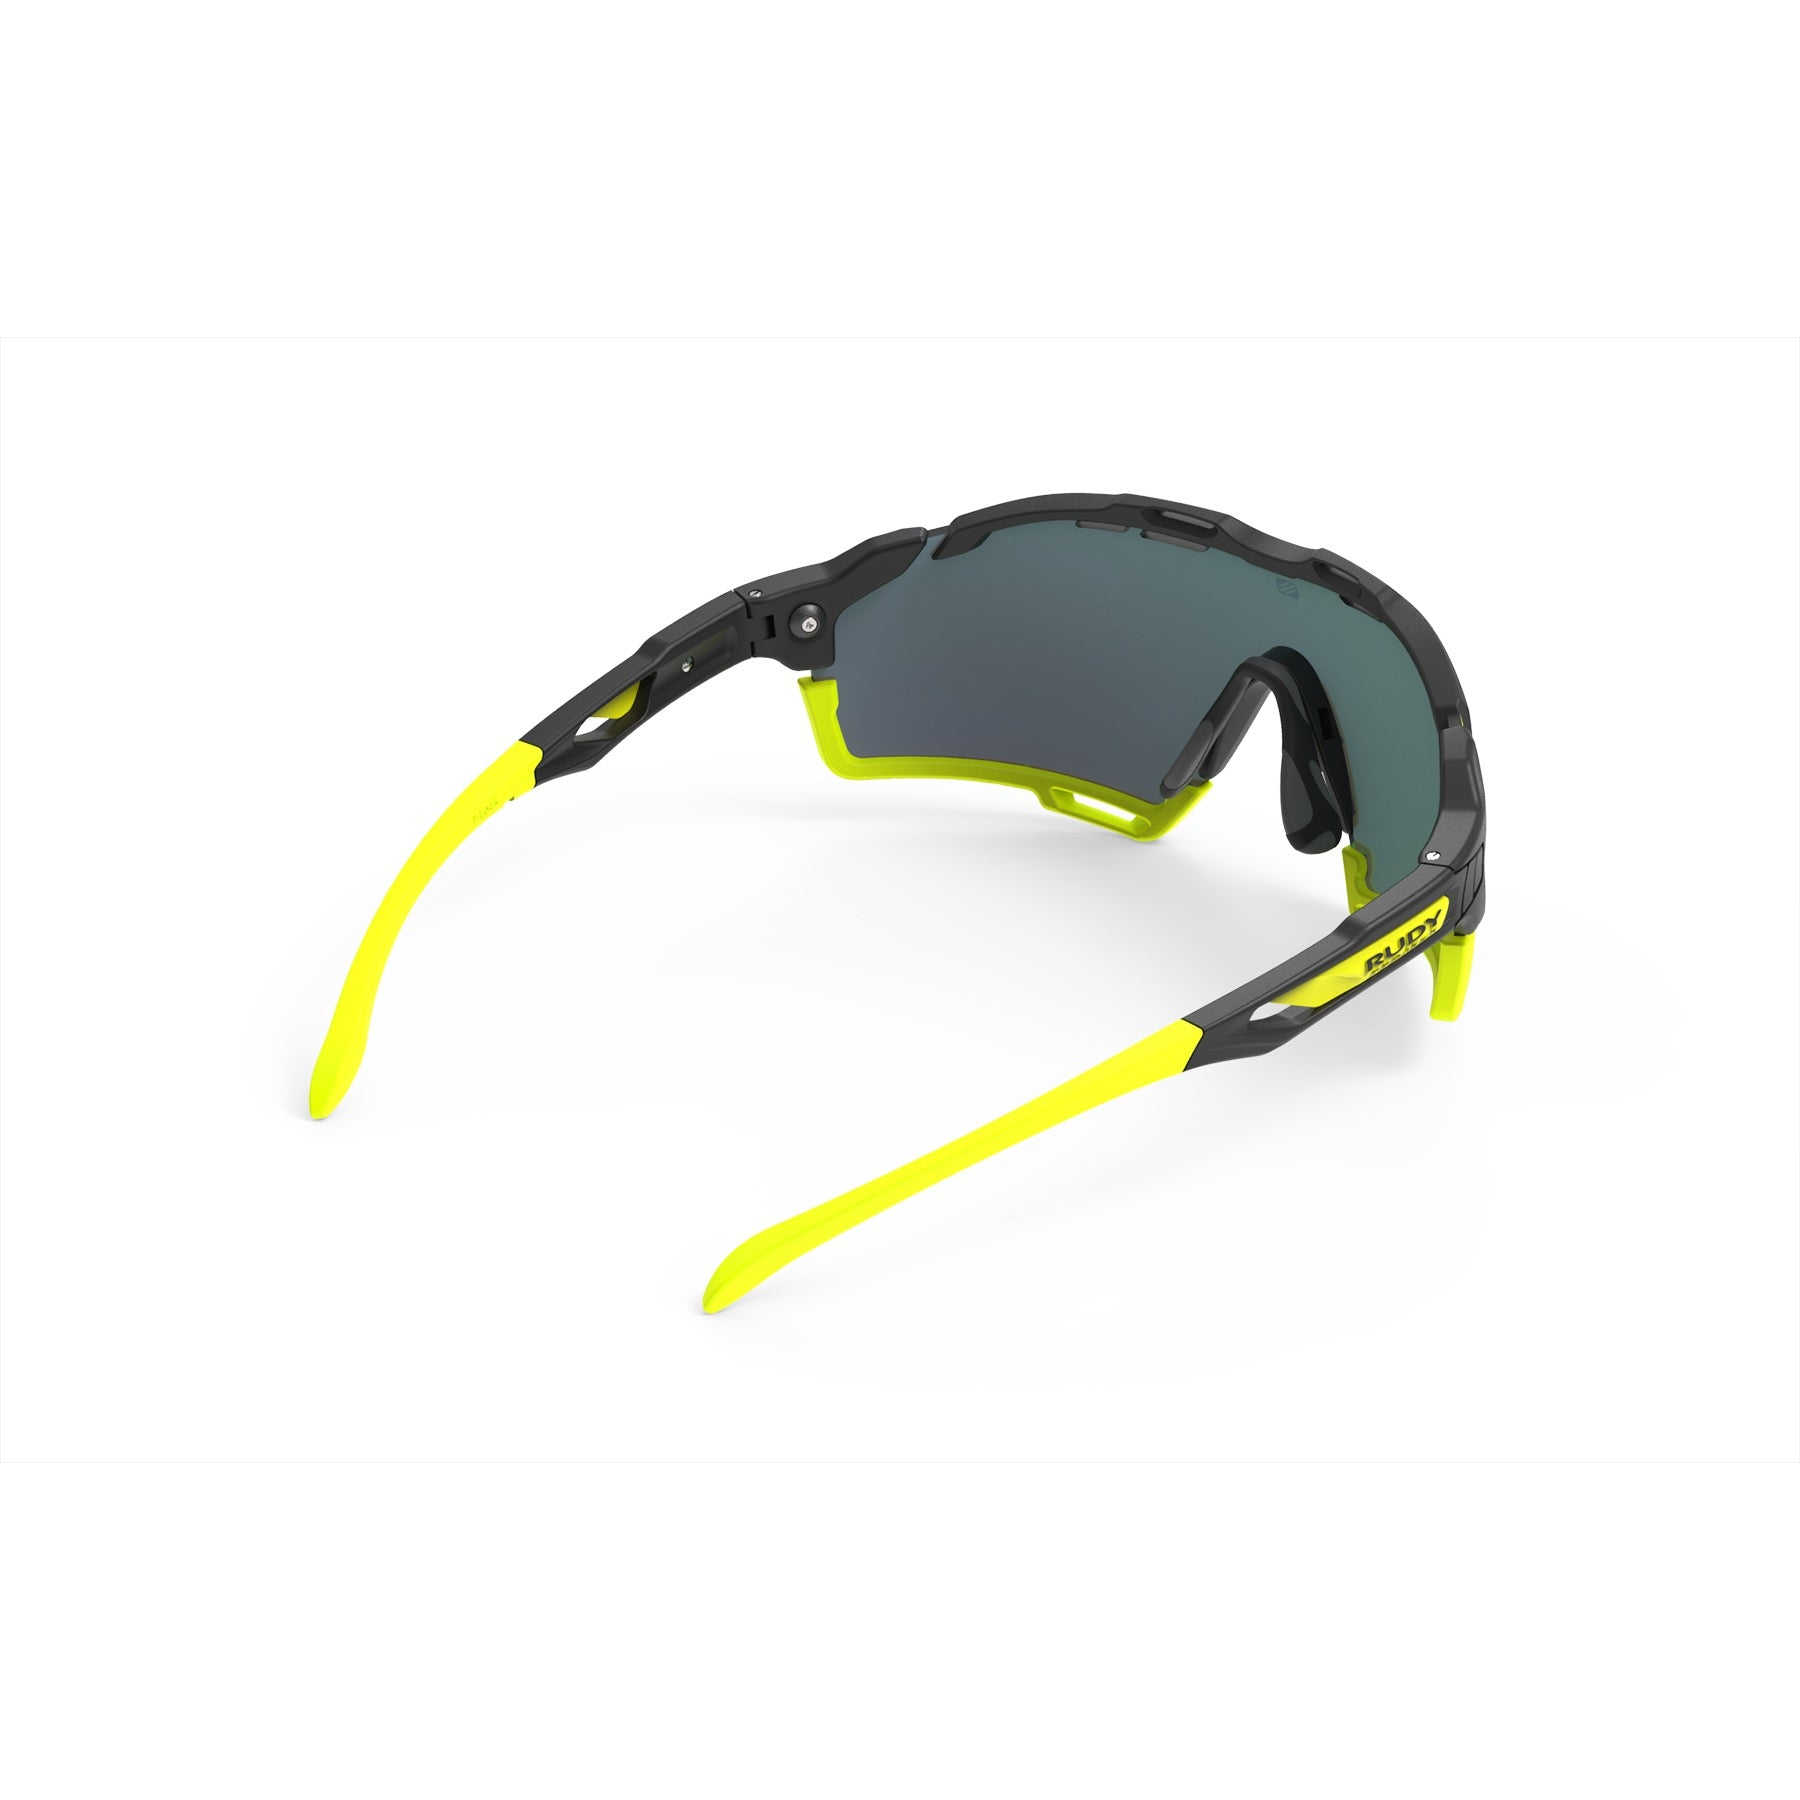 Rudy Project - cutline - frame color: Matte Black - lens color: Multilaser Orange - Bumper Color: Yellow Fluo - photo angle: Top Back Angle Variant Hover Image